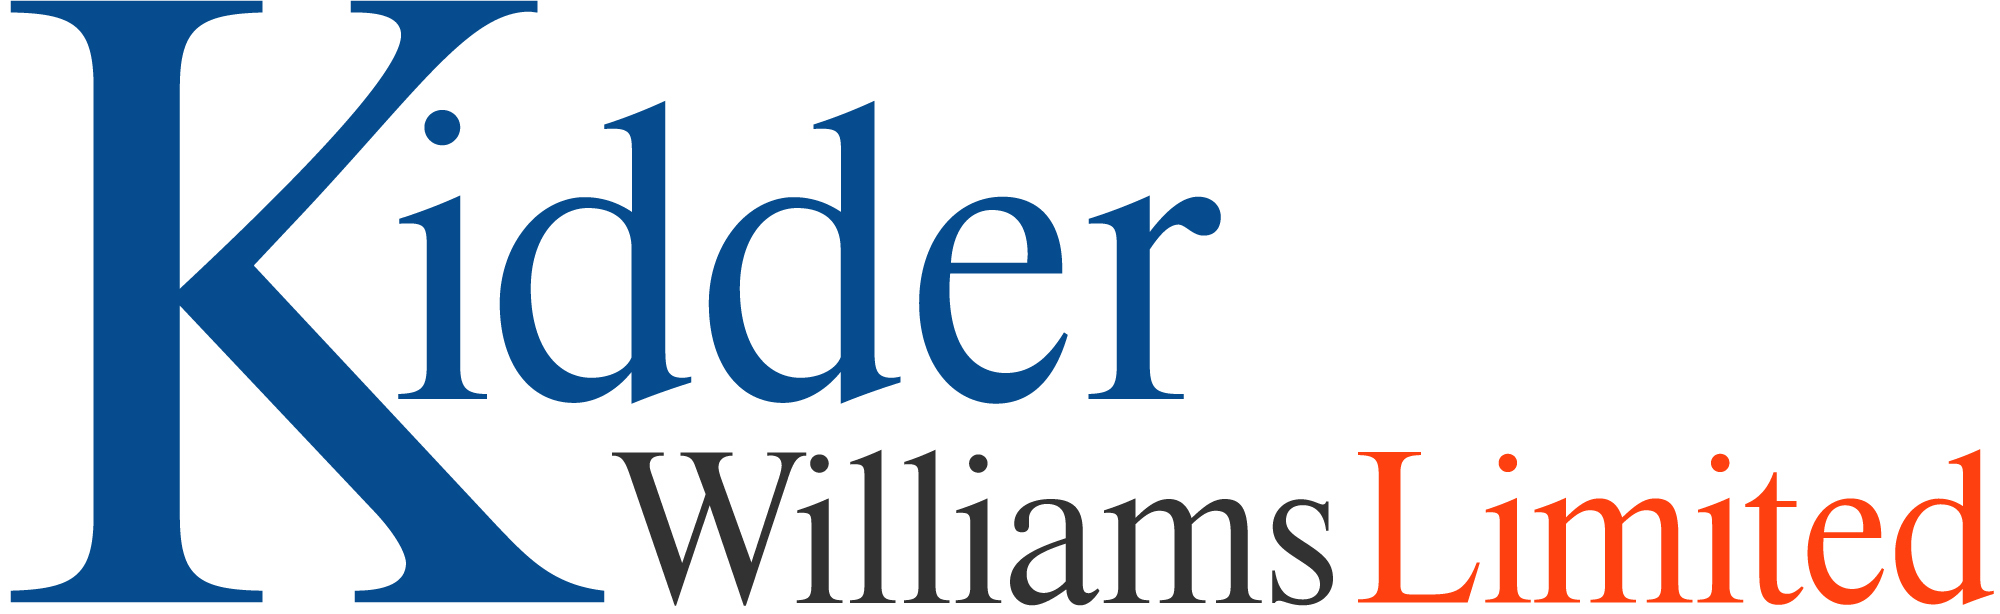 Kidder Williams